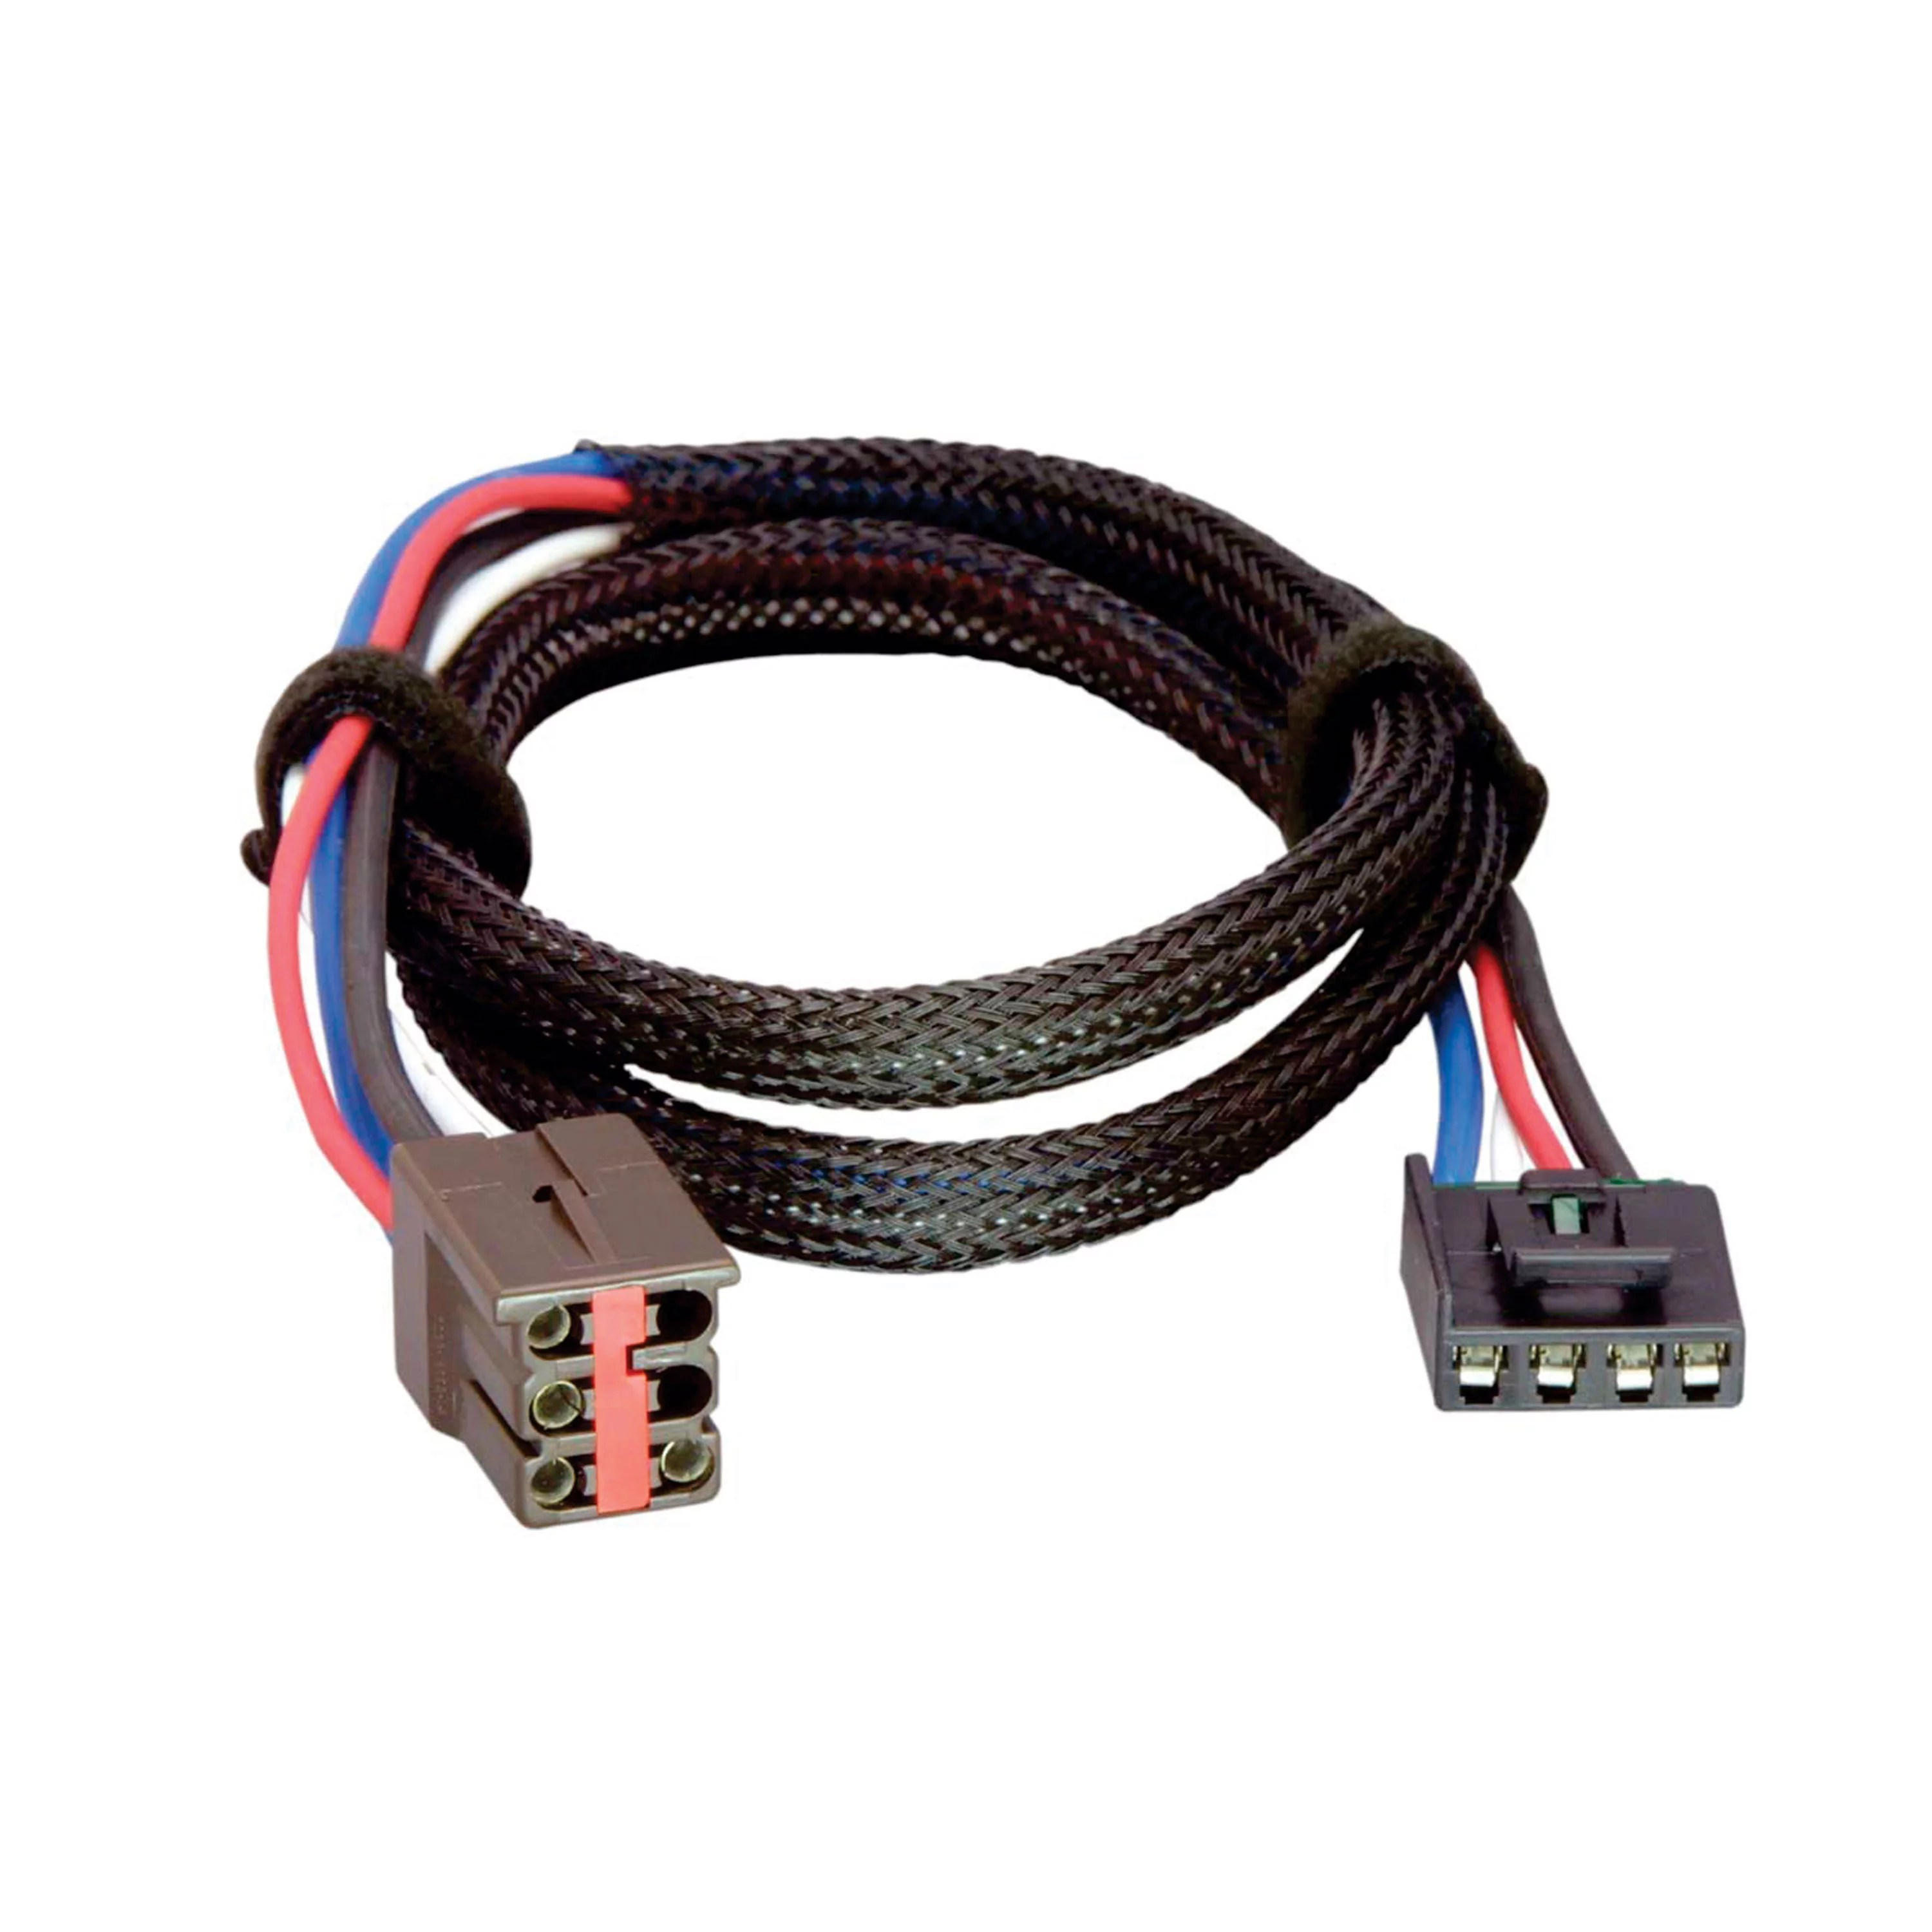 hight resolution of tekonsha 3035 p trailer brake control wiring harness 2 plugs ford subwoofer cable to speaker wire adapter e 450 ford wiring harness adapter